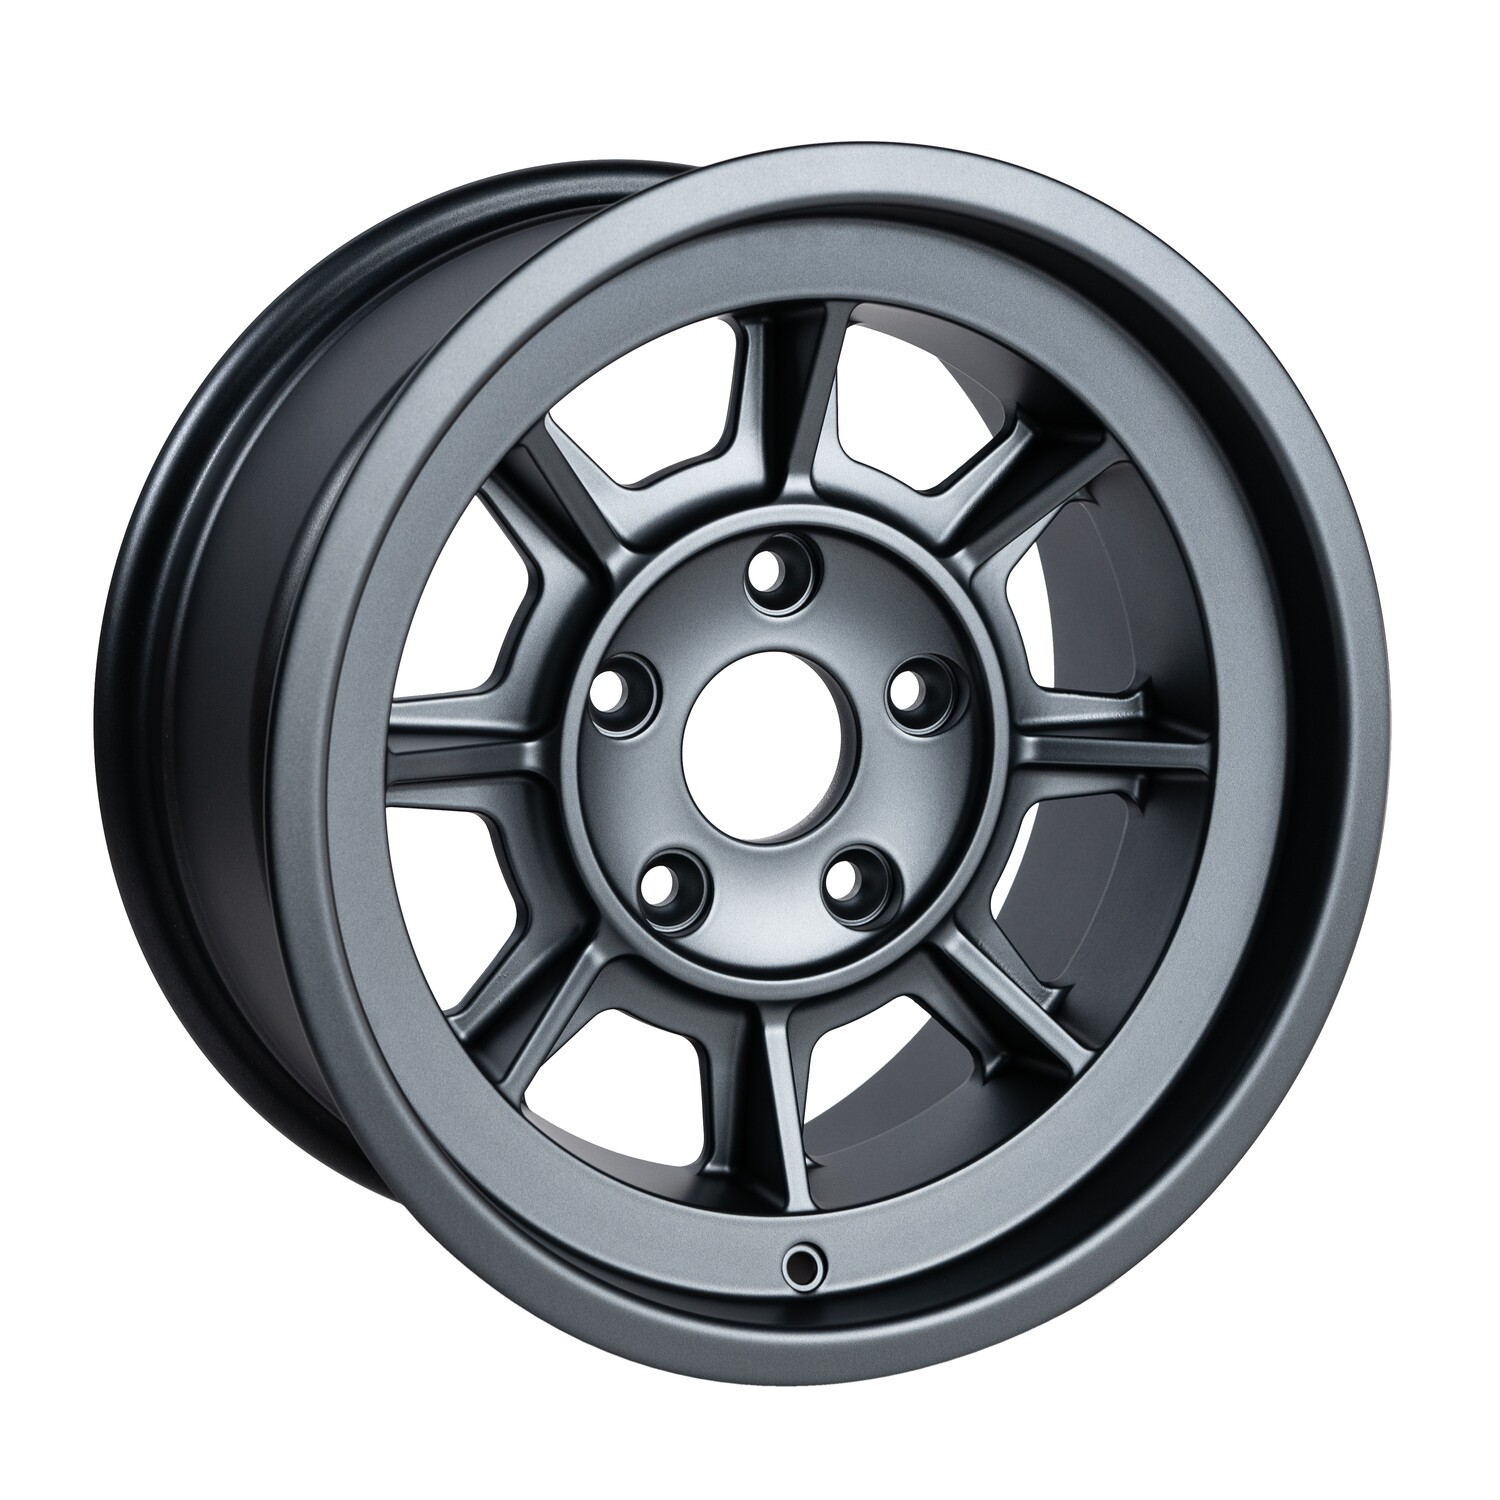 PAG1680 Satin Anthracite 16 x 8